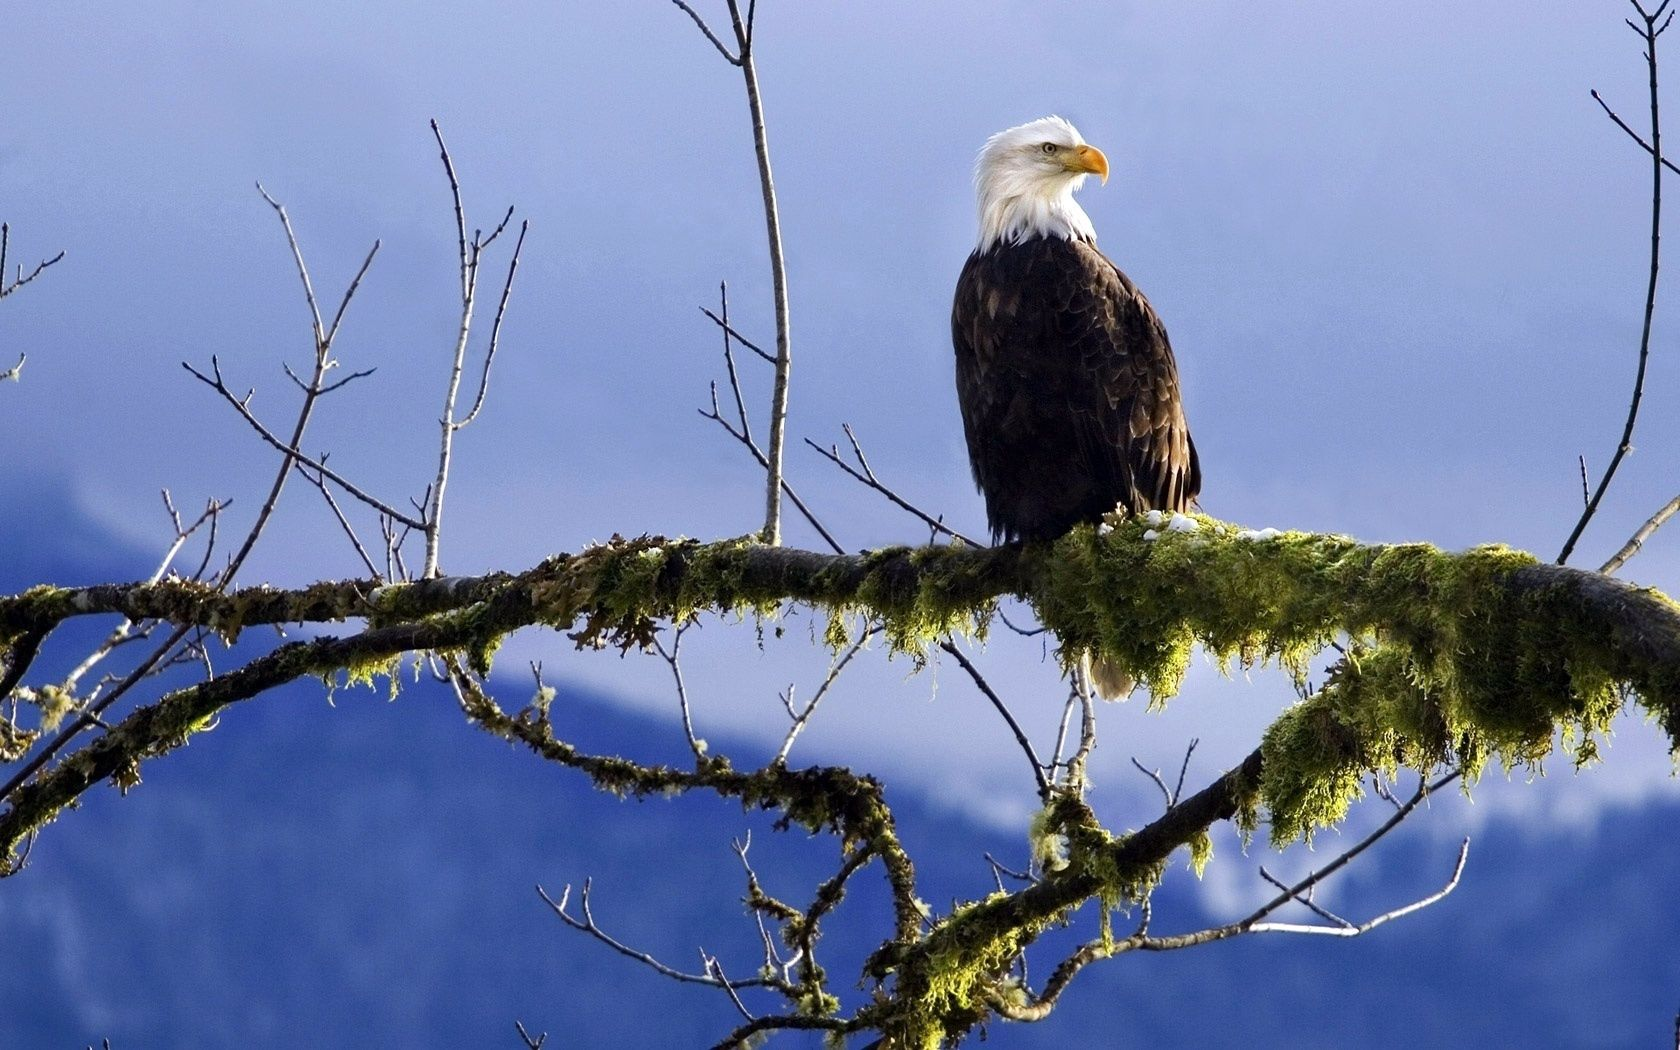 154421 download wallpaper Animals, Bald Eagle, White-Headed Eagle, Branch, Moss screensavers and pictures for free